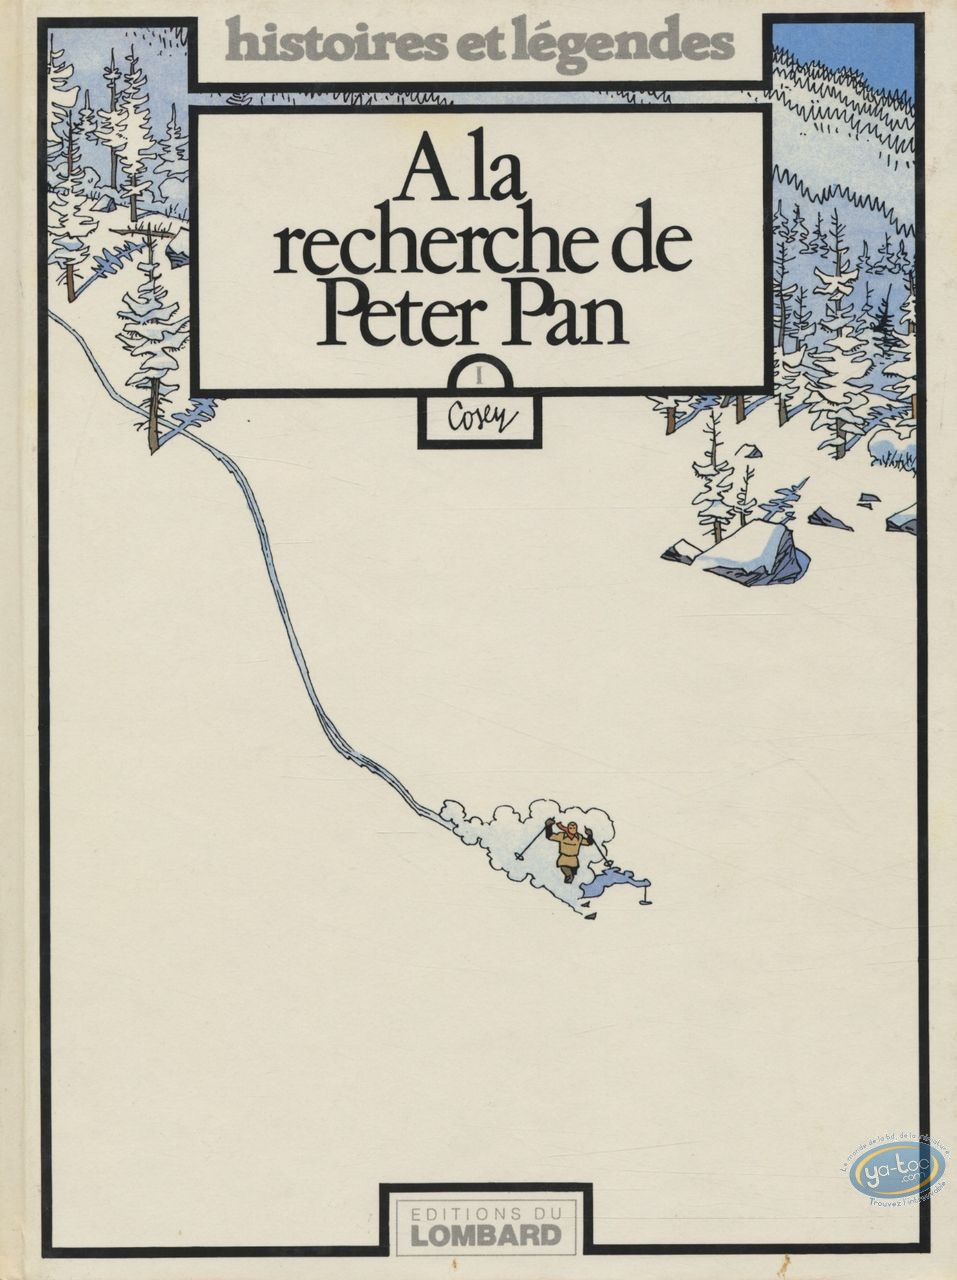 Listed European Comic Books, Recherche de Peter Pan (A la) : A la Recherche de Peter Pan